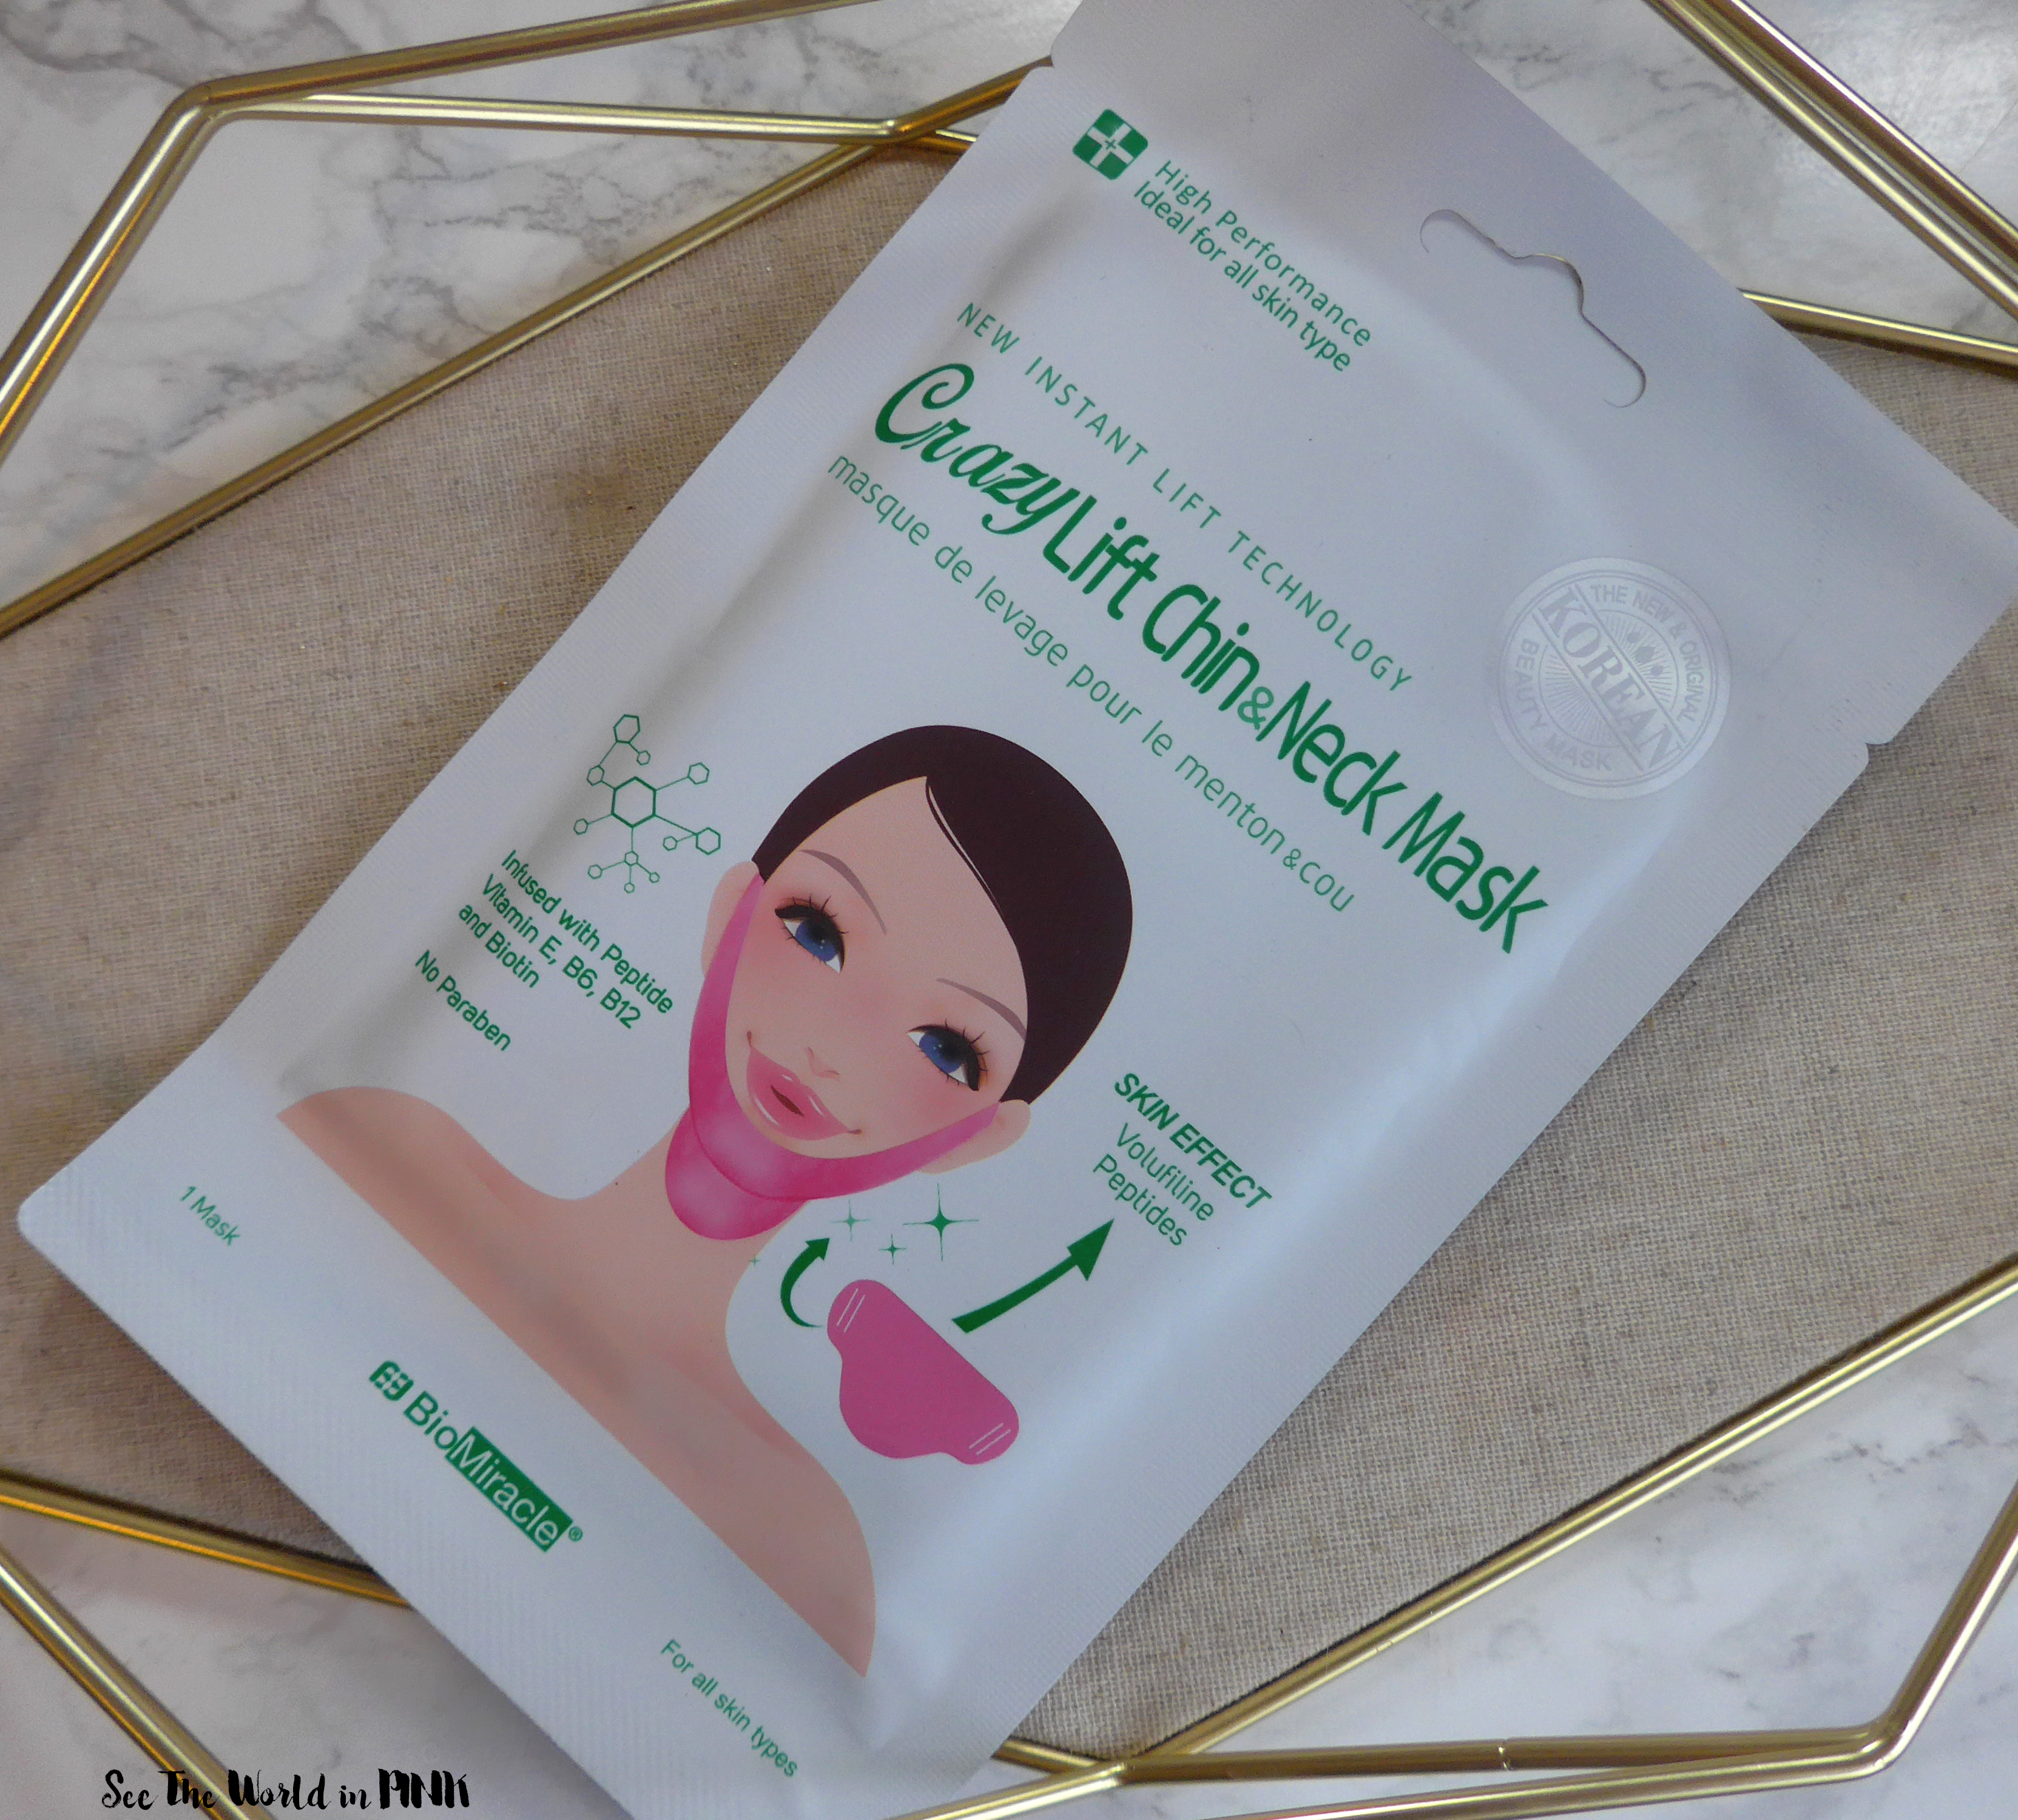 Skincare Saturday - BioMiracle Crazy Lift Chin & Neck Mask